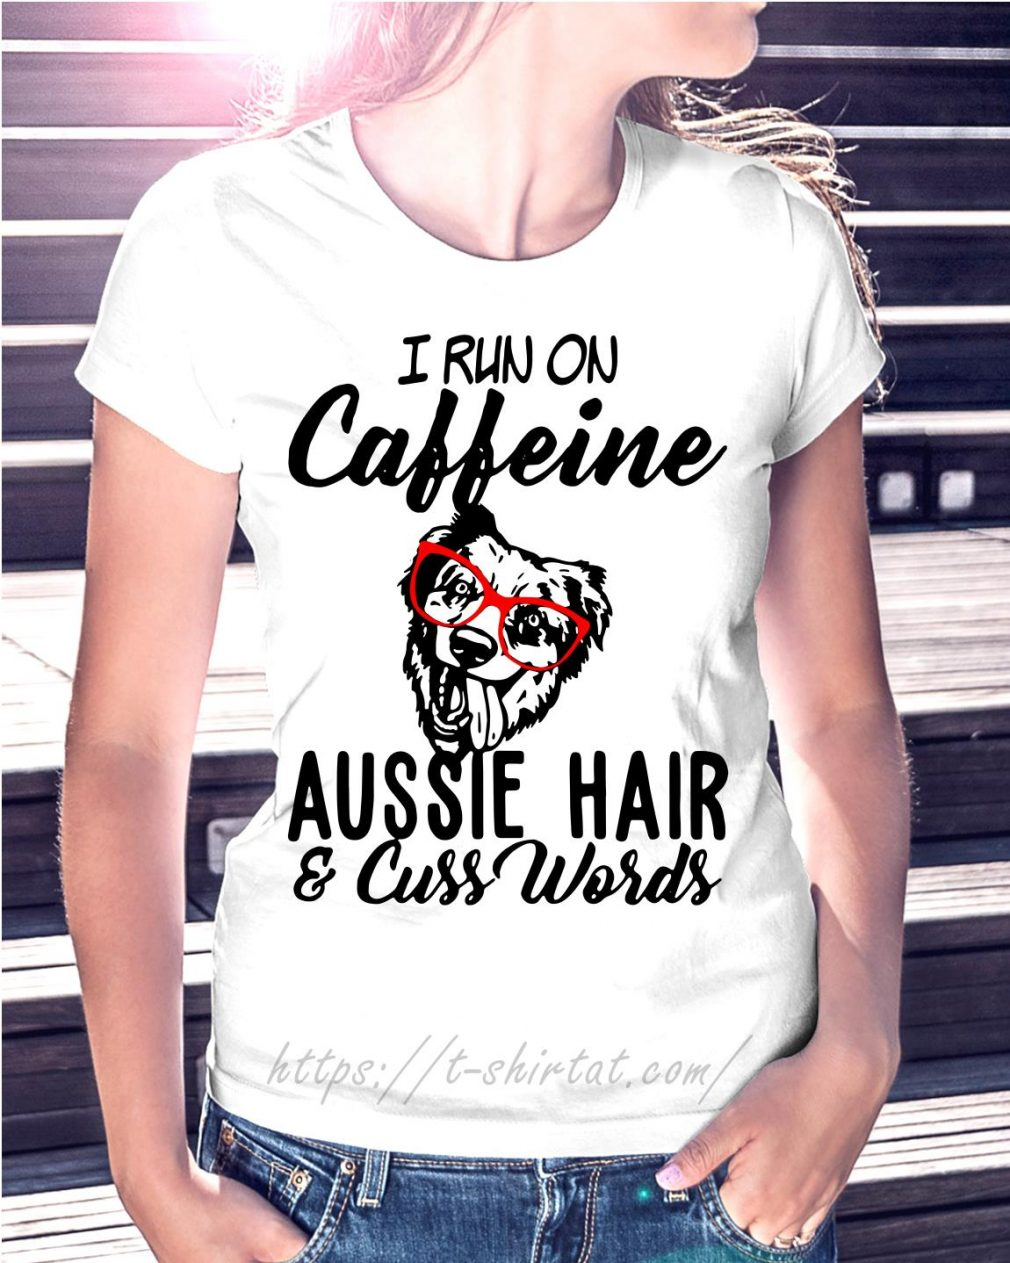 I run on caffeine Aussie hair and cuss words